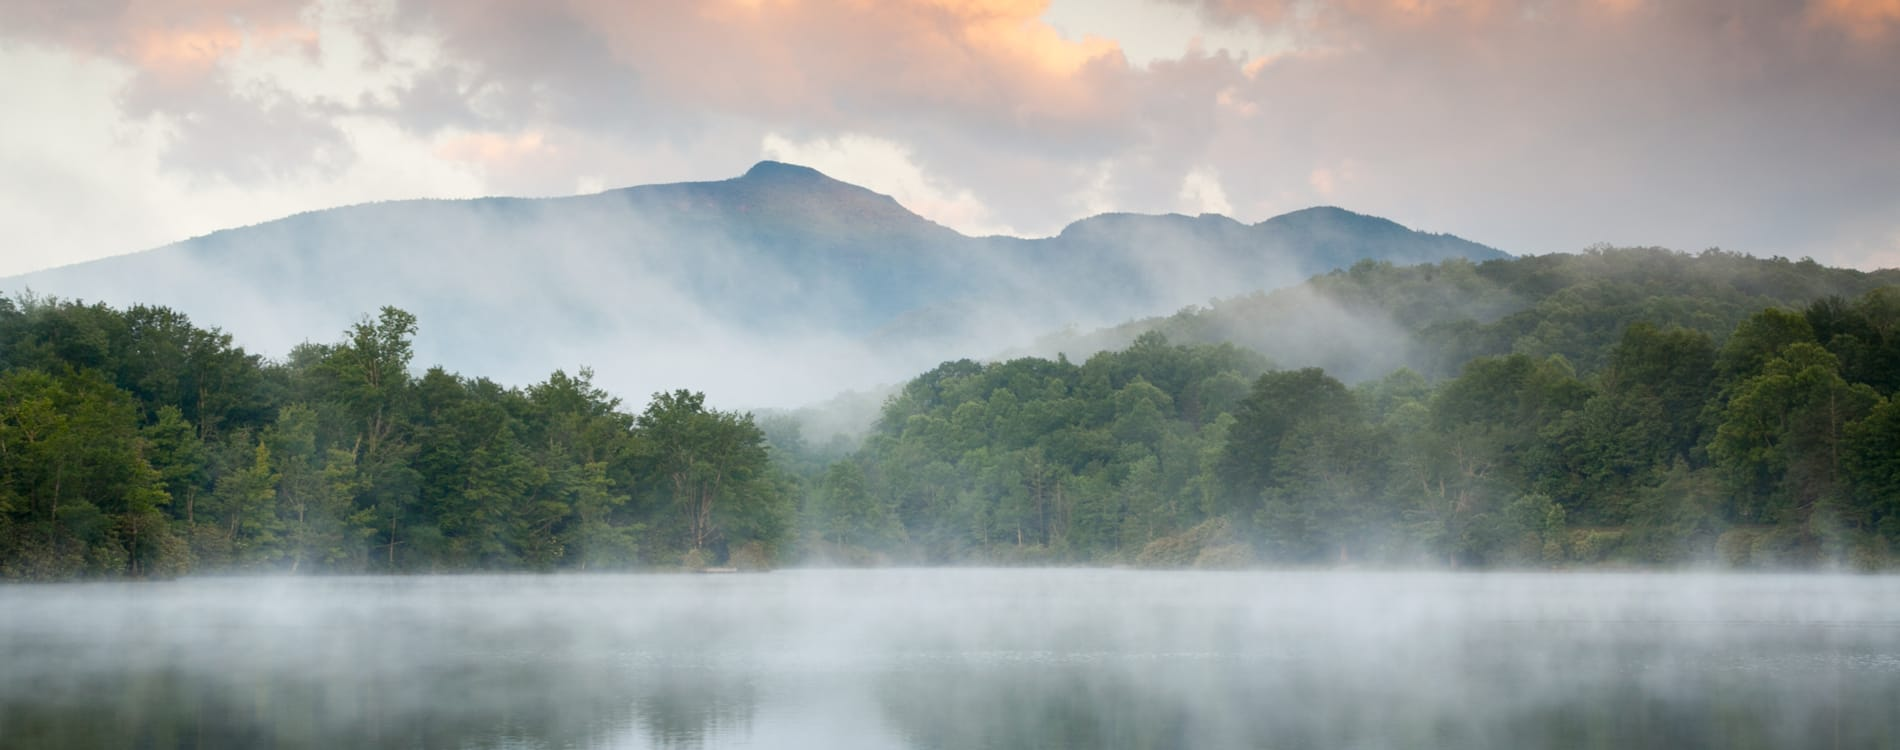 Boone, NC - Grandfather Mountain Sunrise from Julian Price Lake